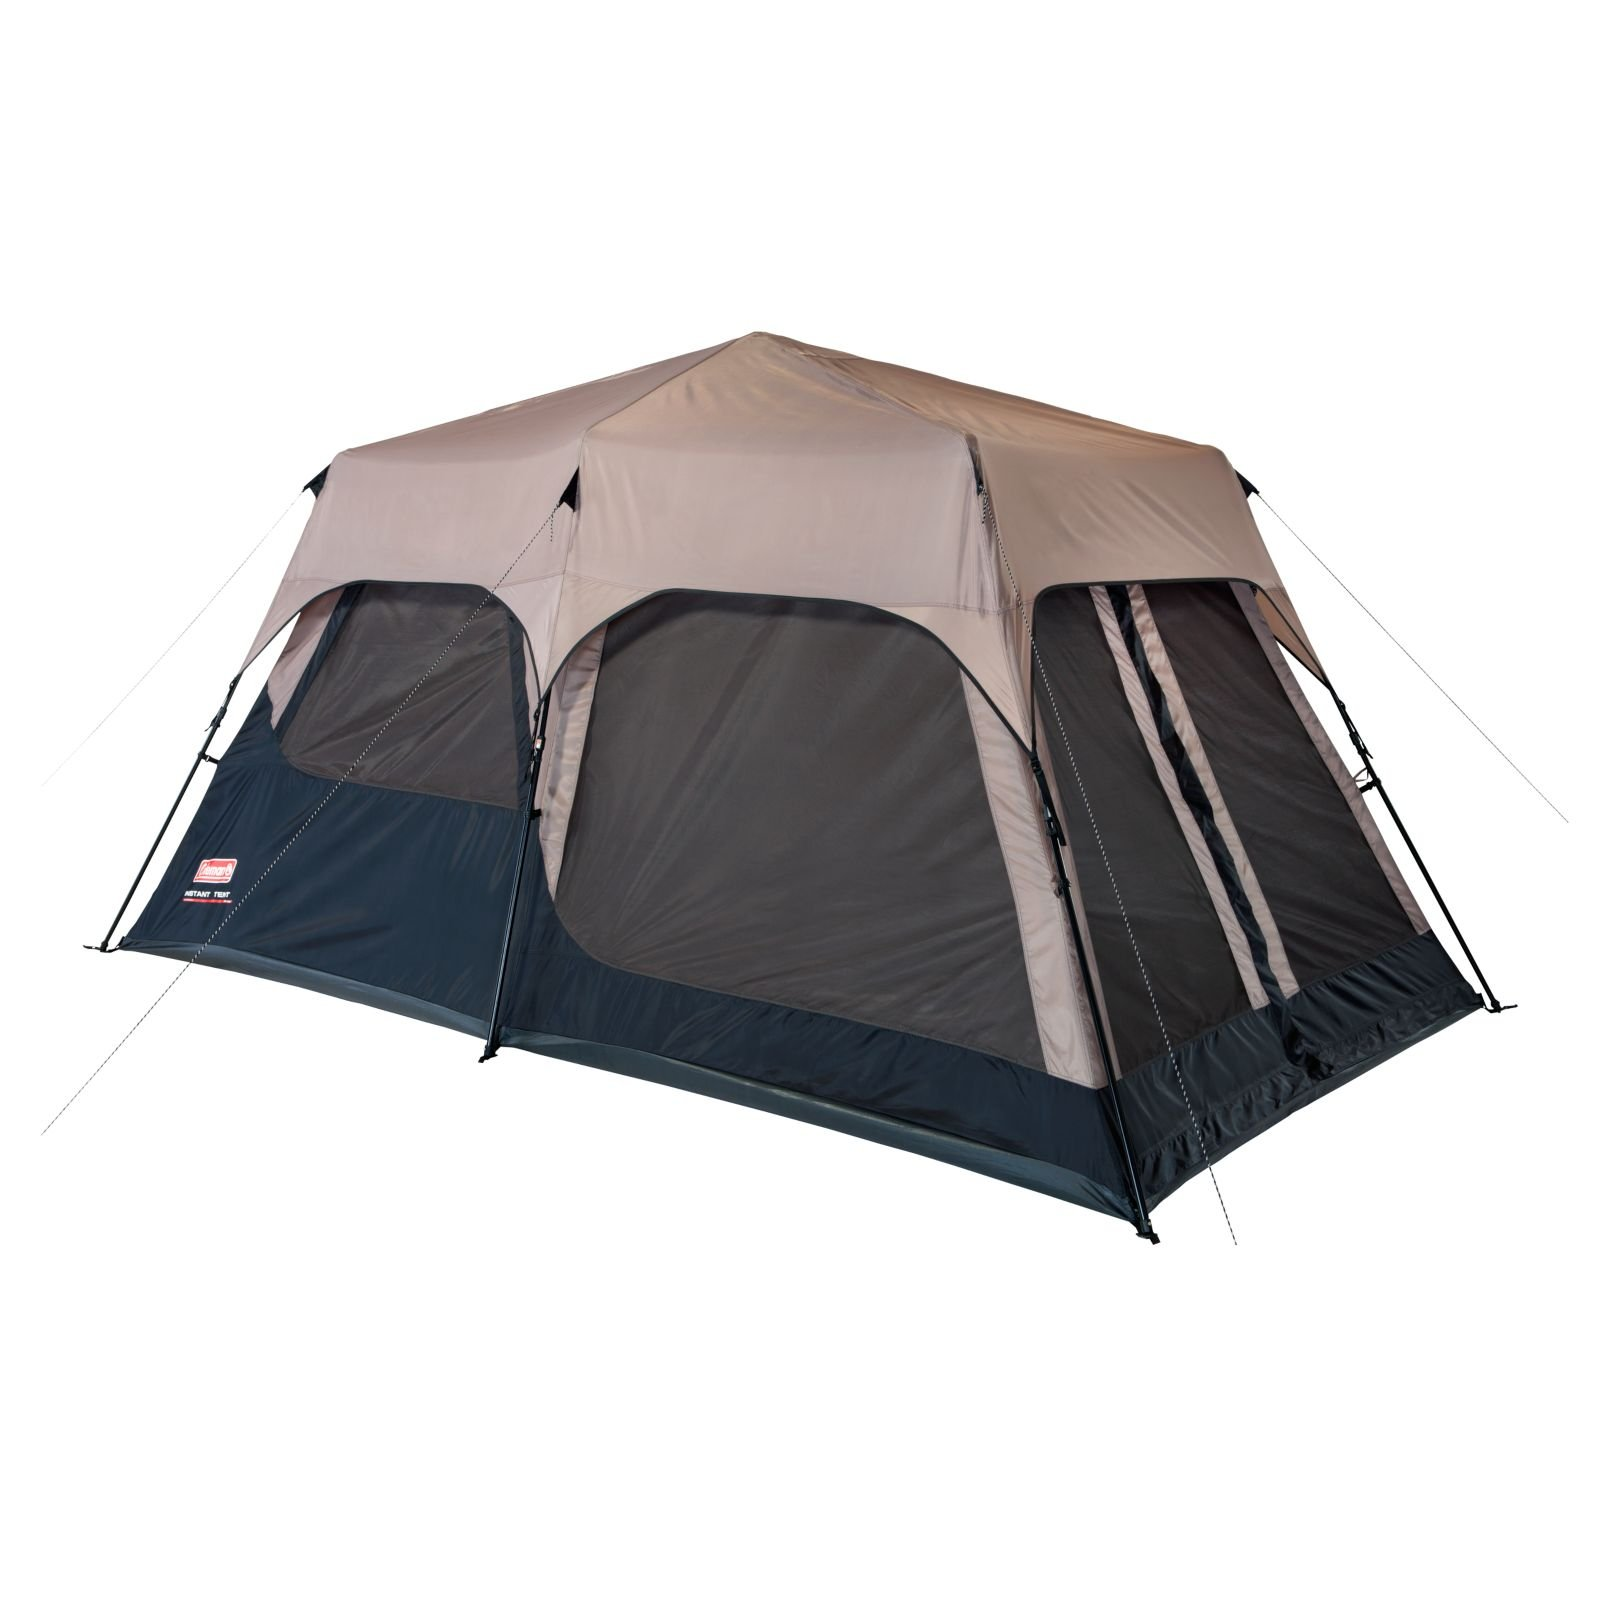 Coleman Instant Tent Rainfly, 14 x 10-Feet, Brown - 2000014008 by Coleman